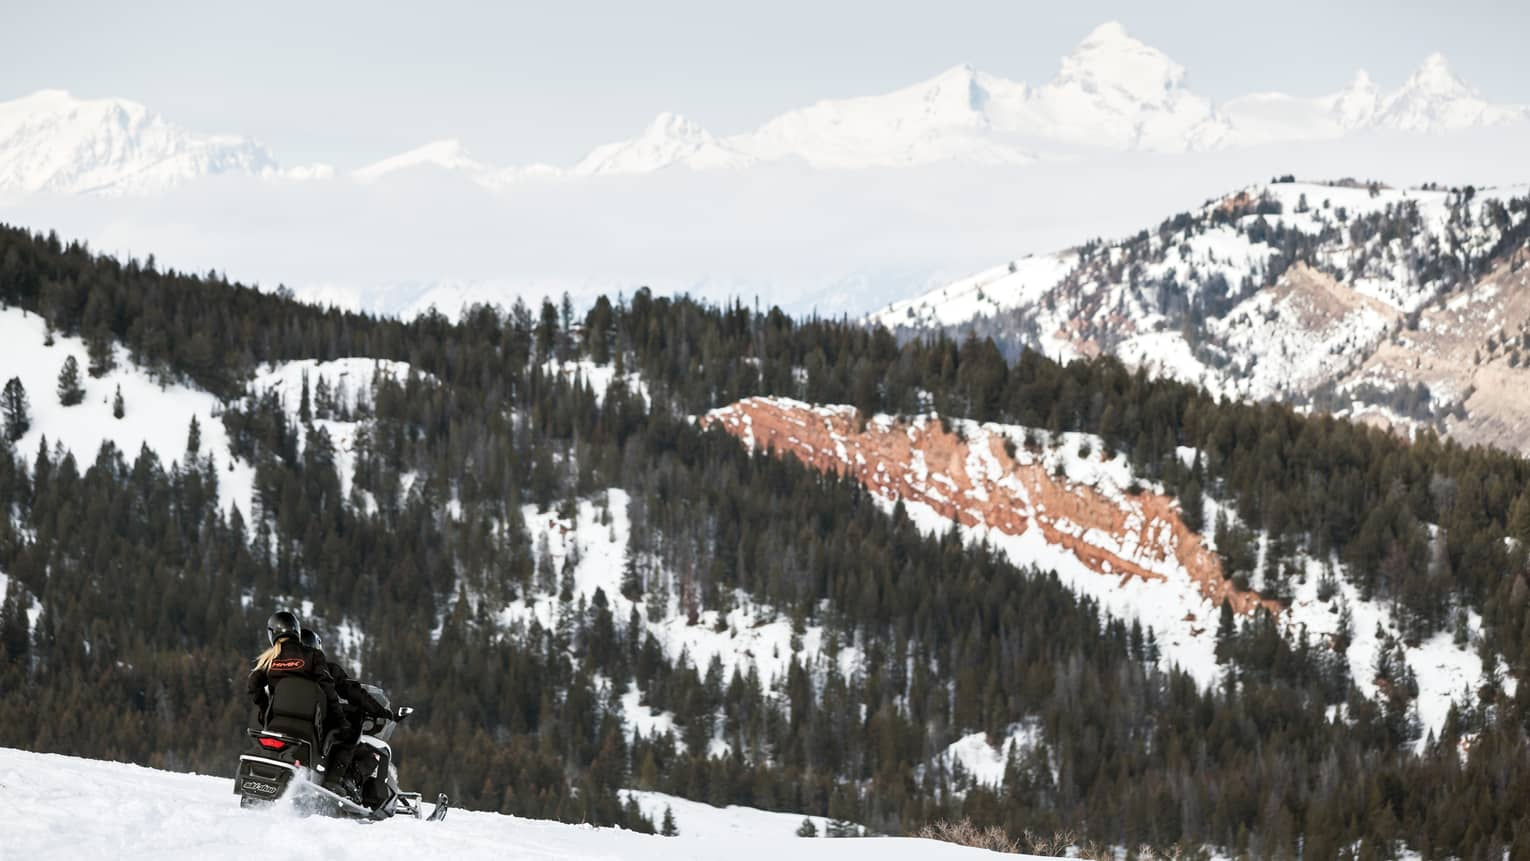 Couple rides snowmobile over mountain slope, trees and mountains in background